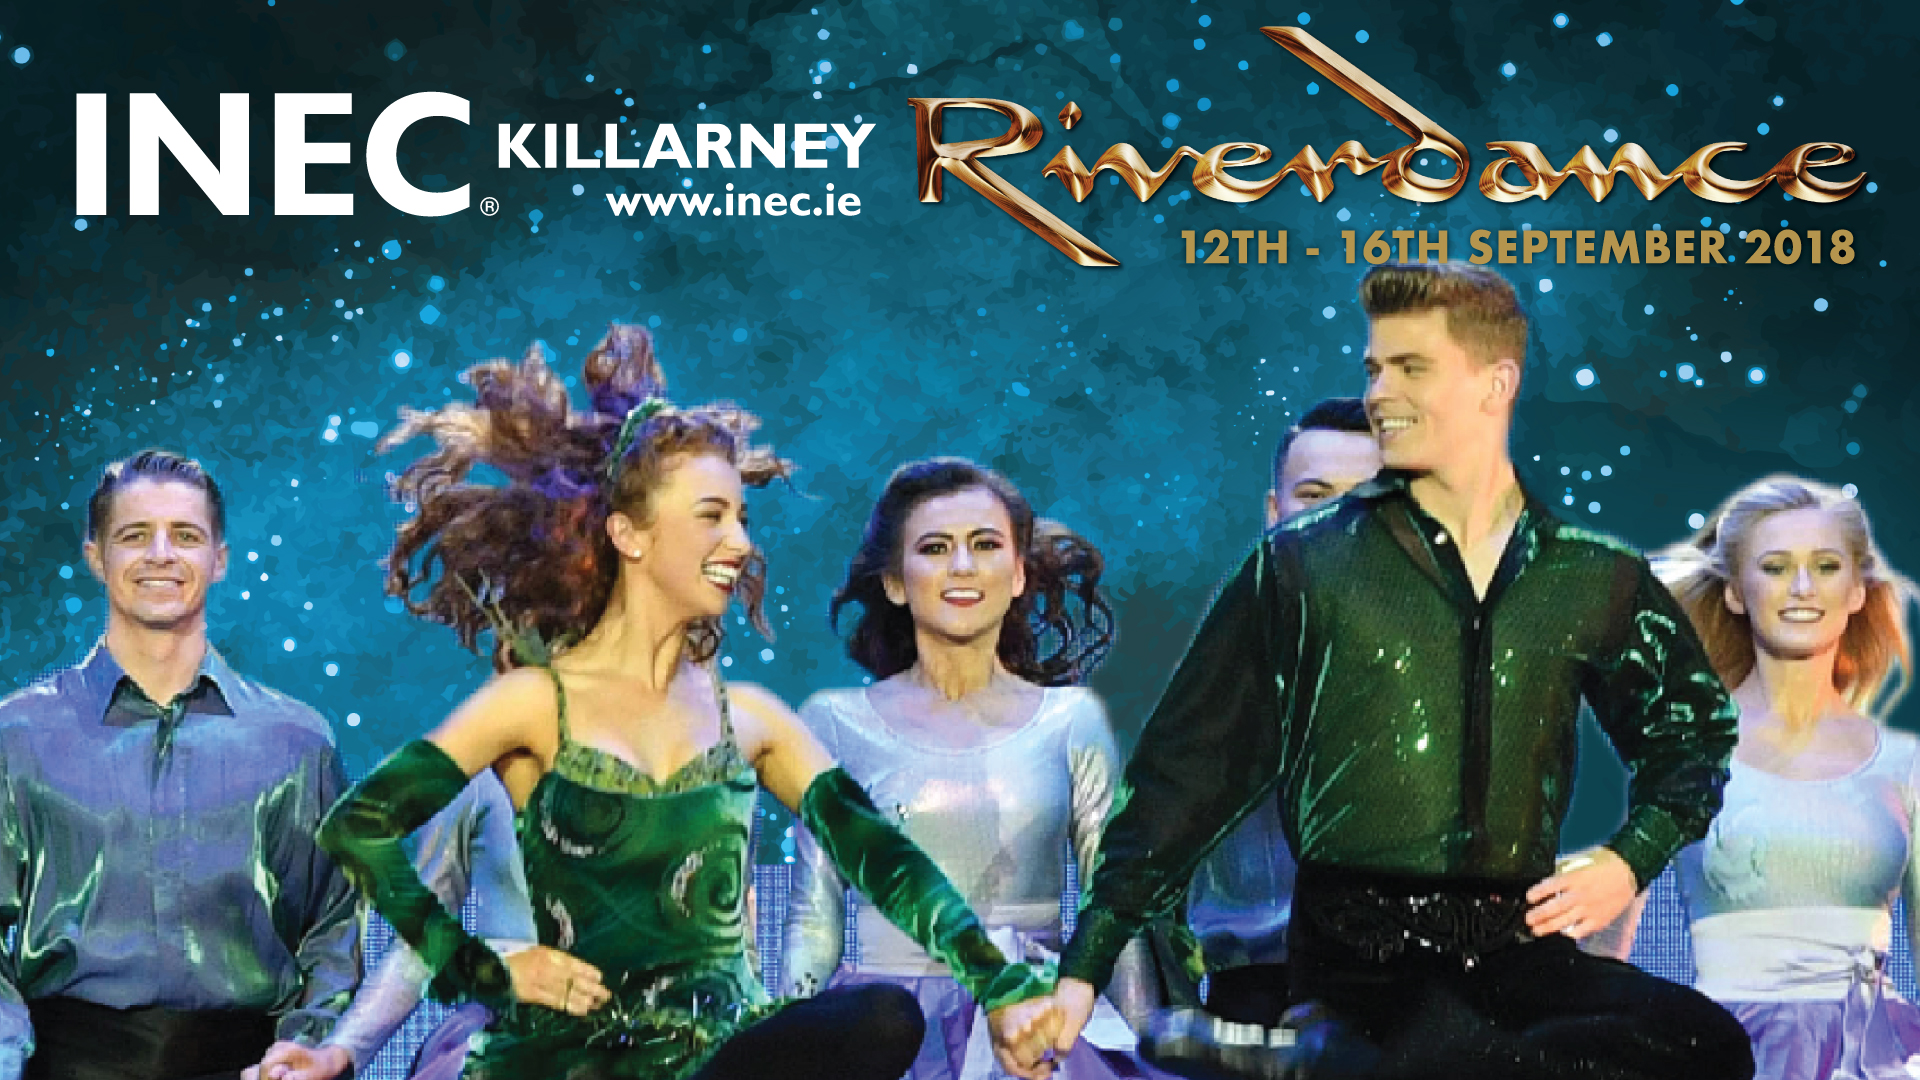 The international Irish Dancing phenomenon Riverdance returns to the INEC Killarney from 12th - 16th September 2018